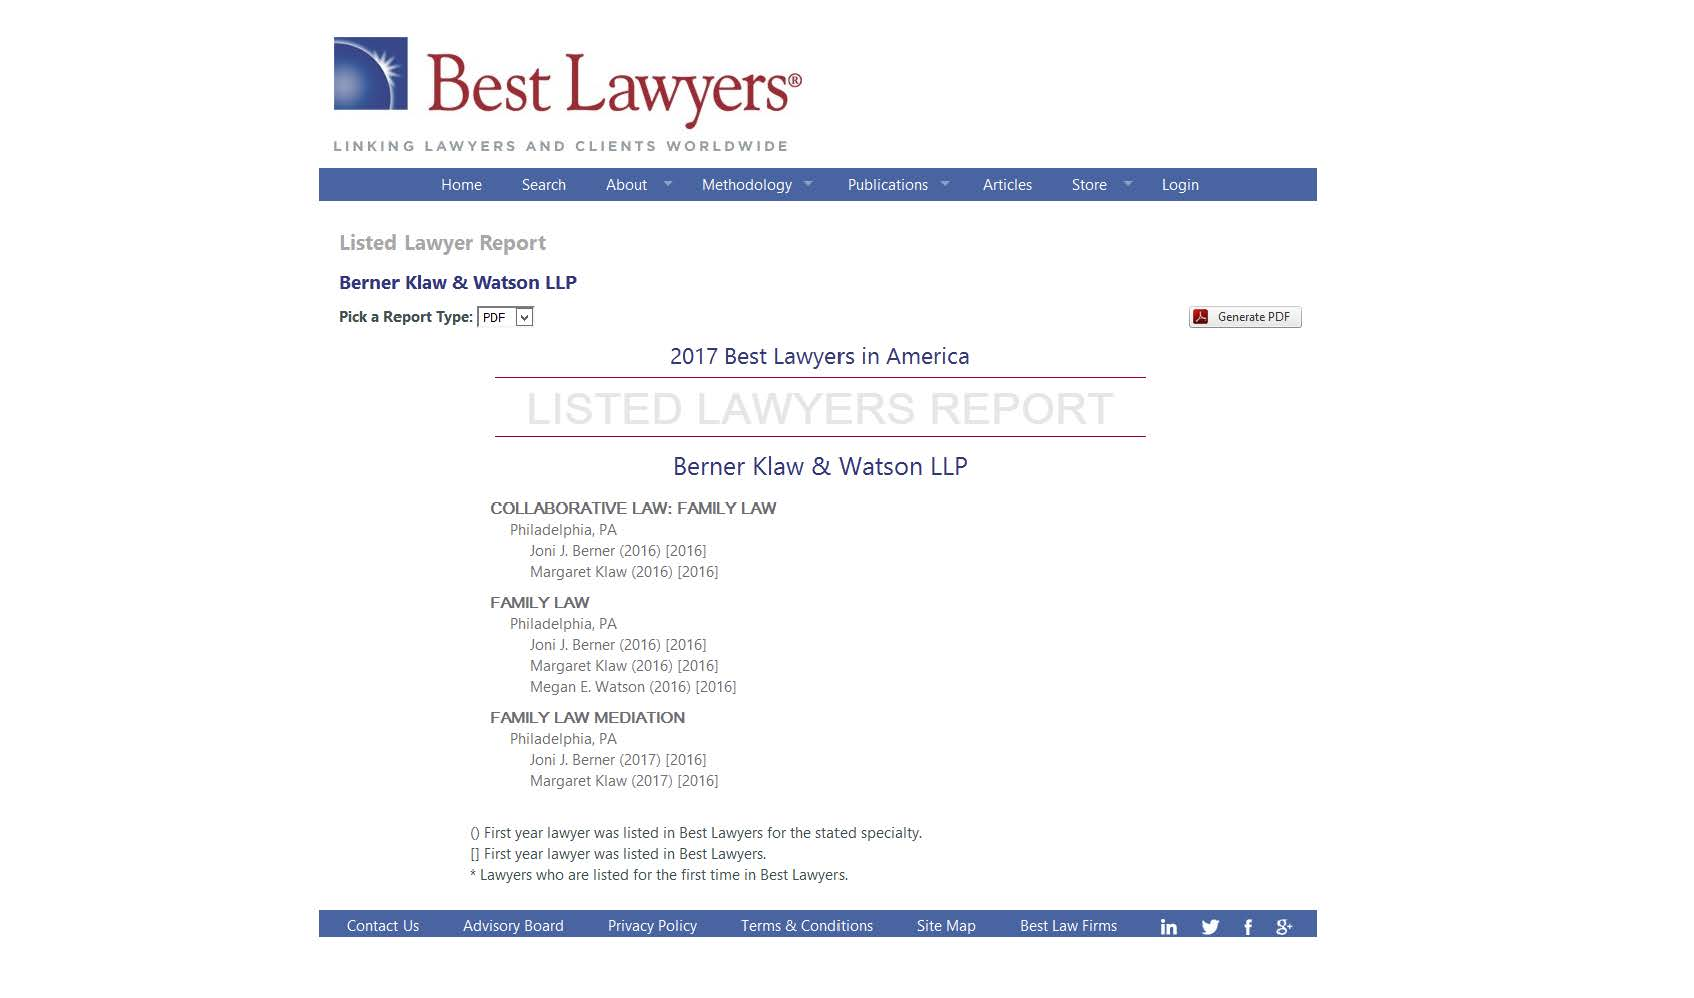 best lawyers 2017 listing